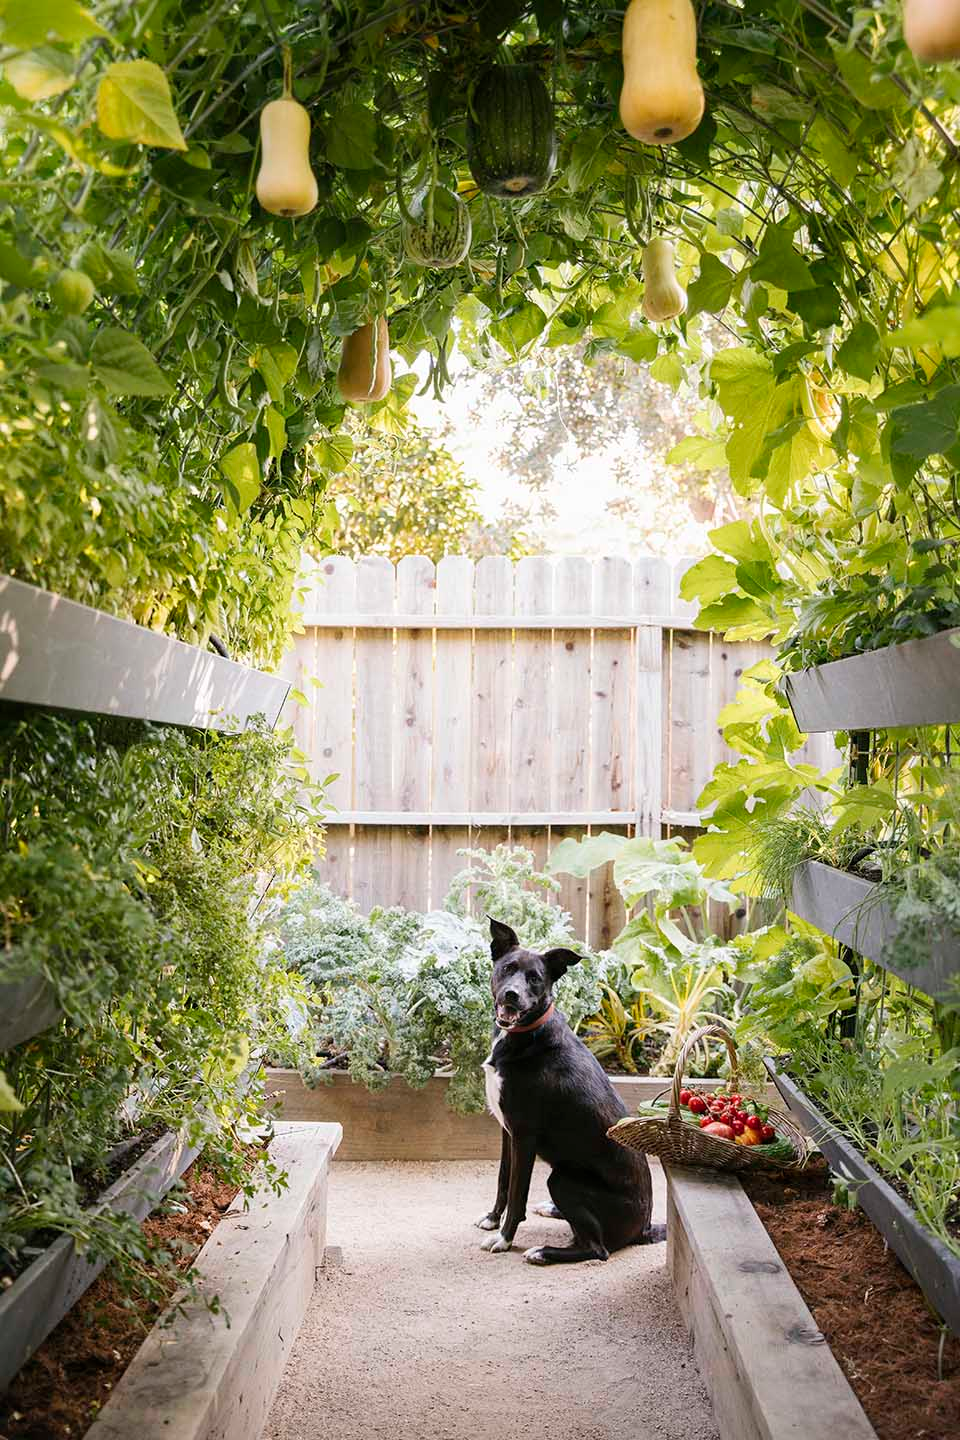 Whether your yard is the size of a postage stamp or you're just looking for ways to use your vertical space, trellising is a beautiful way to grow veggies. Here's how to grow vegetables in a vertical garden.